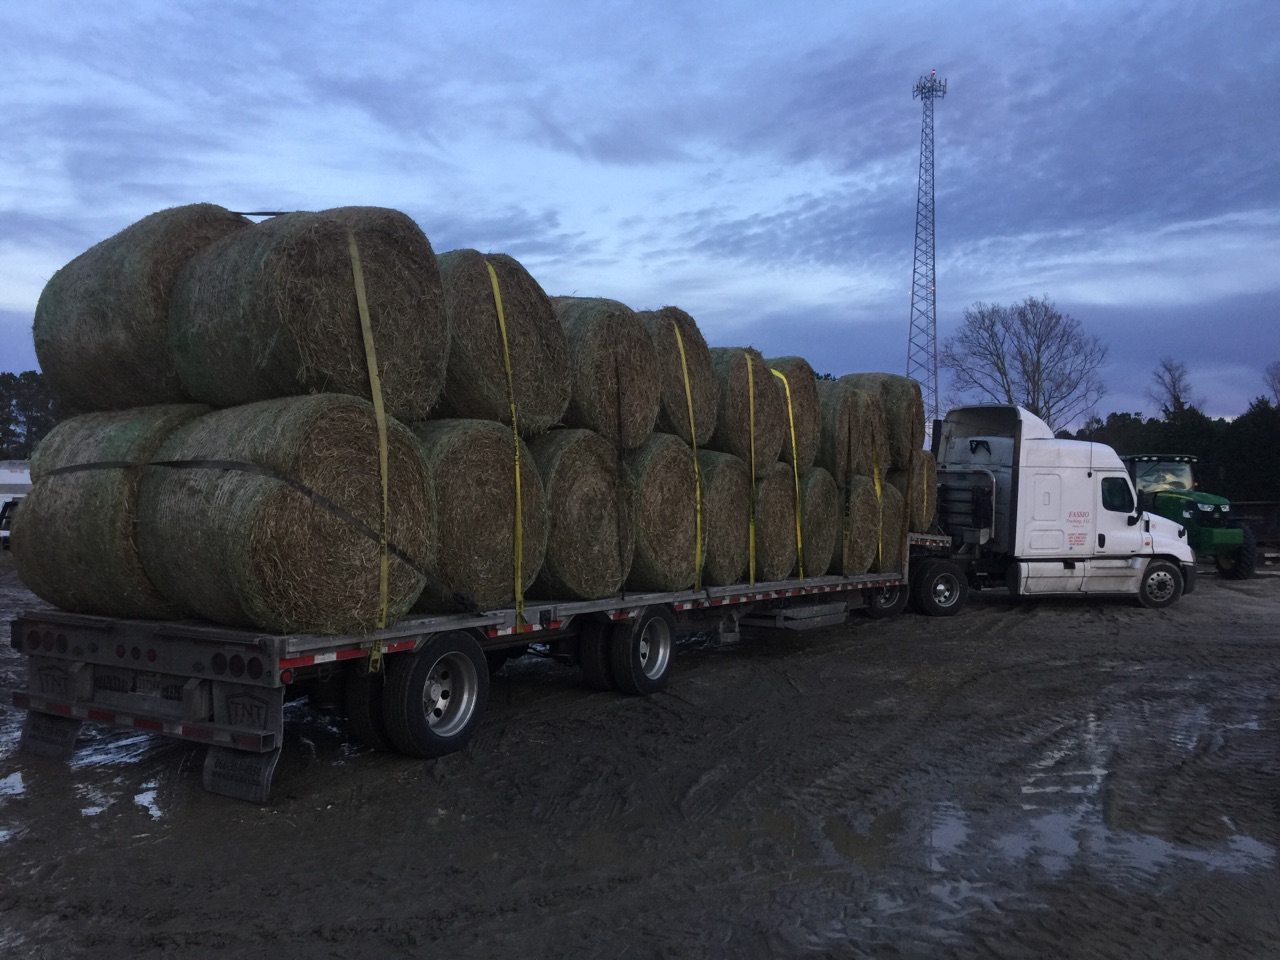 Tips for Transporting Your Hay-Making Equipment - Tractor Transport